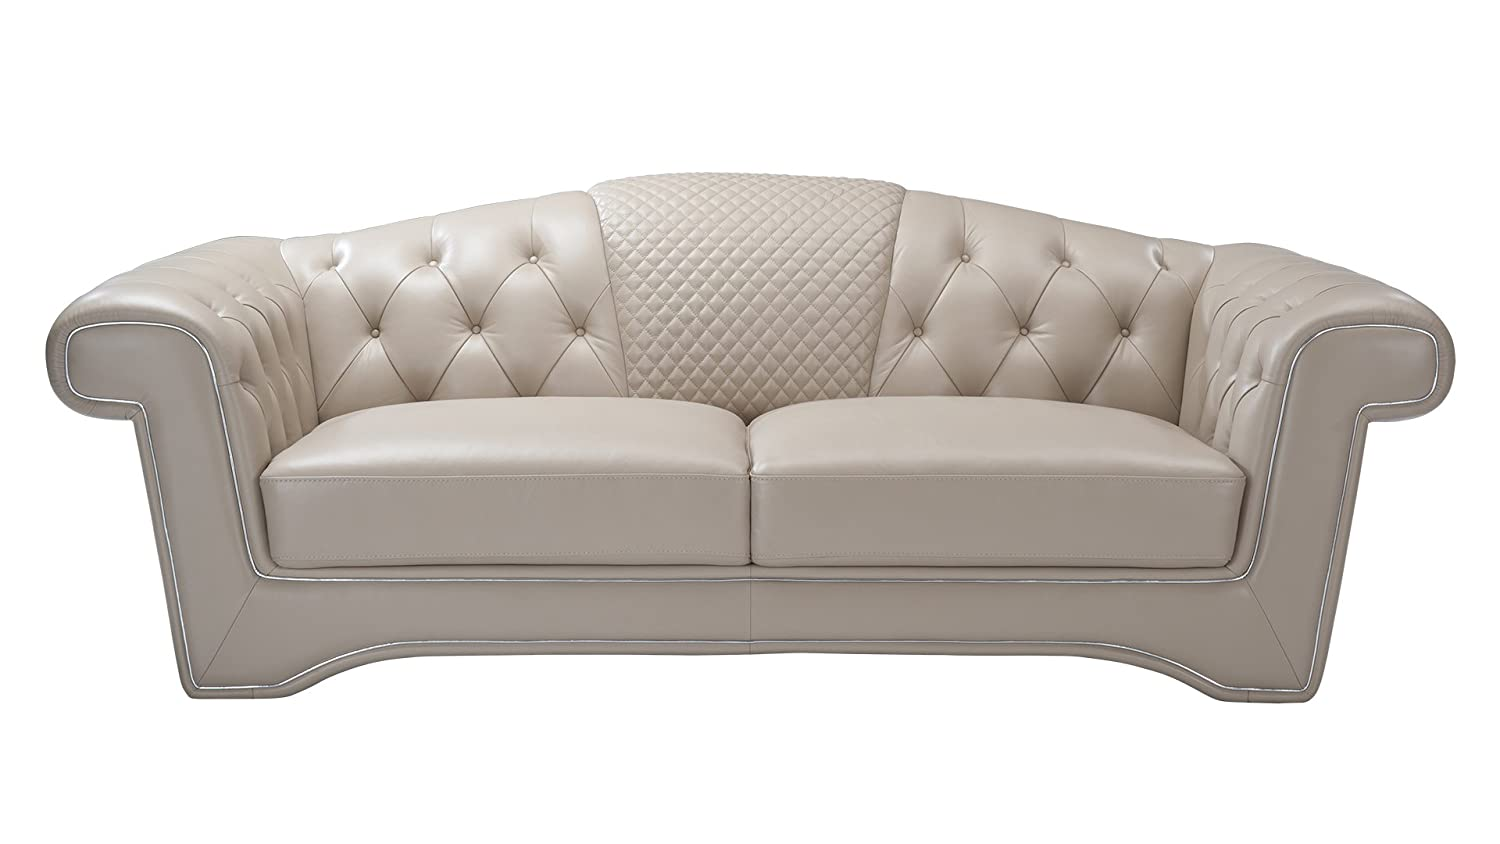 Amazon.com: American Eagle Muebles ek698-pe Collection parte ...